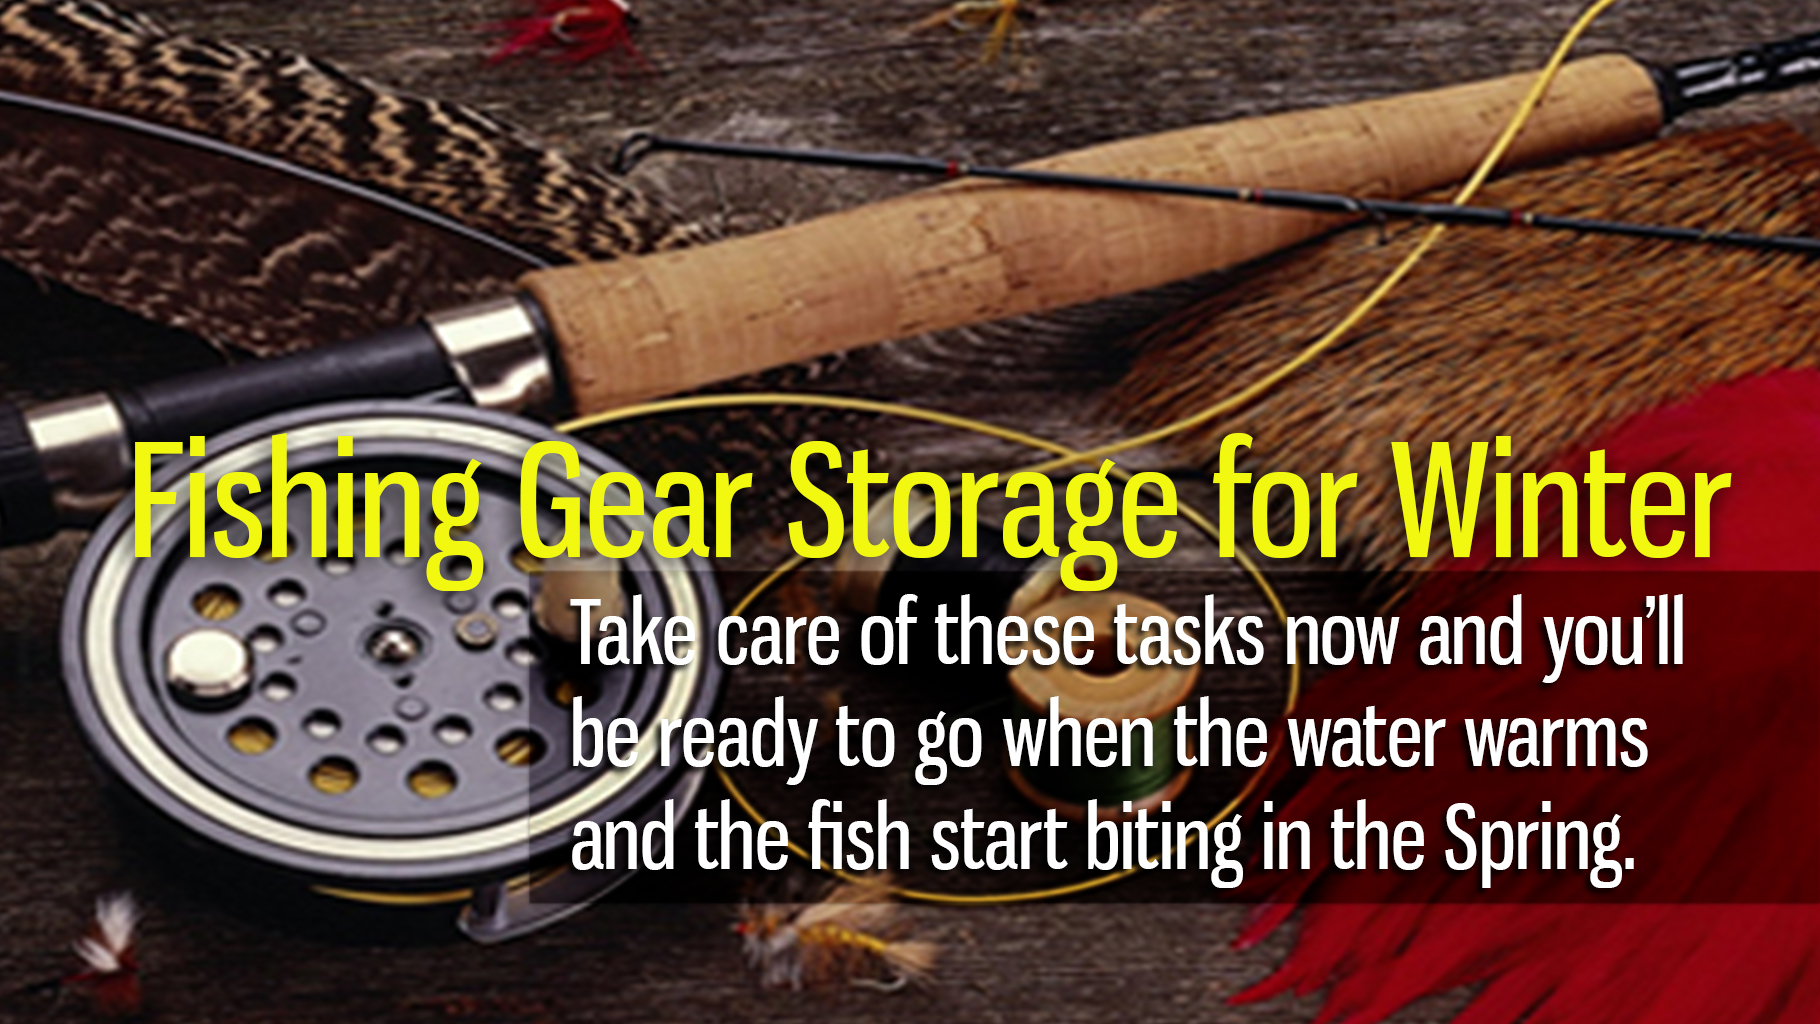 Storing Your Fishing Gear for the Winter